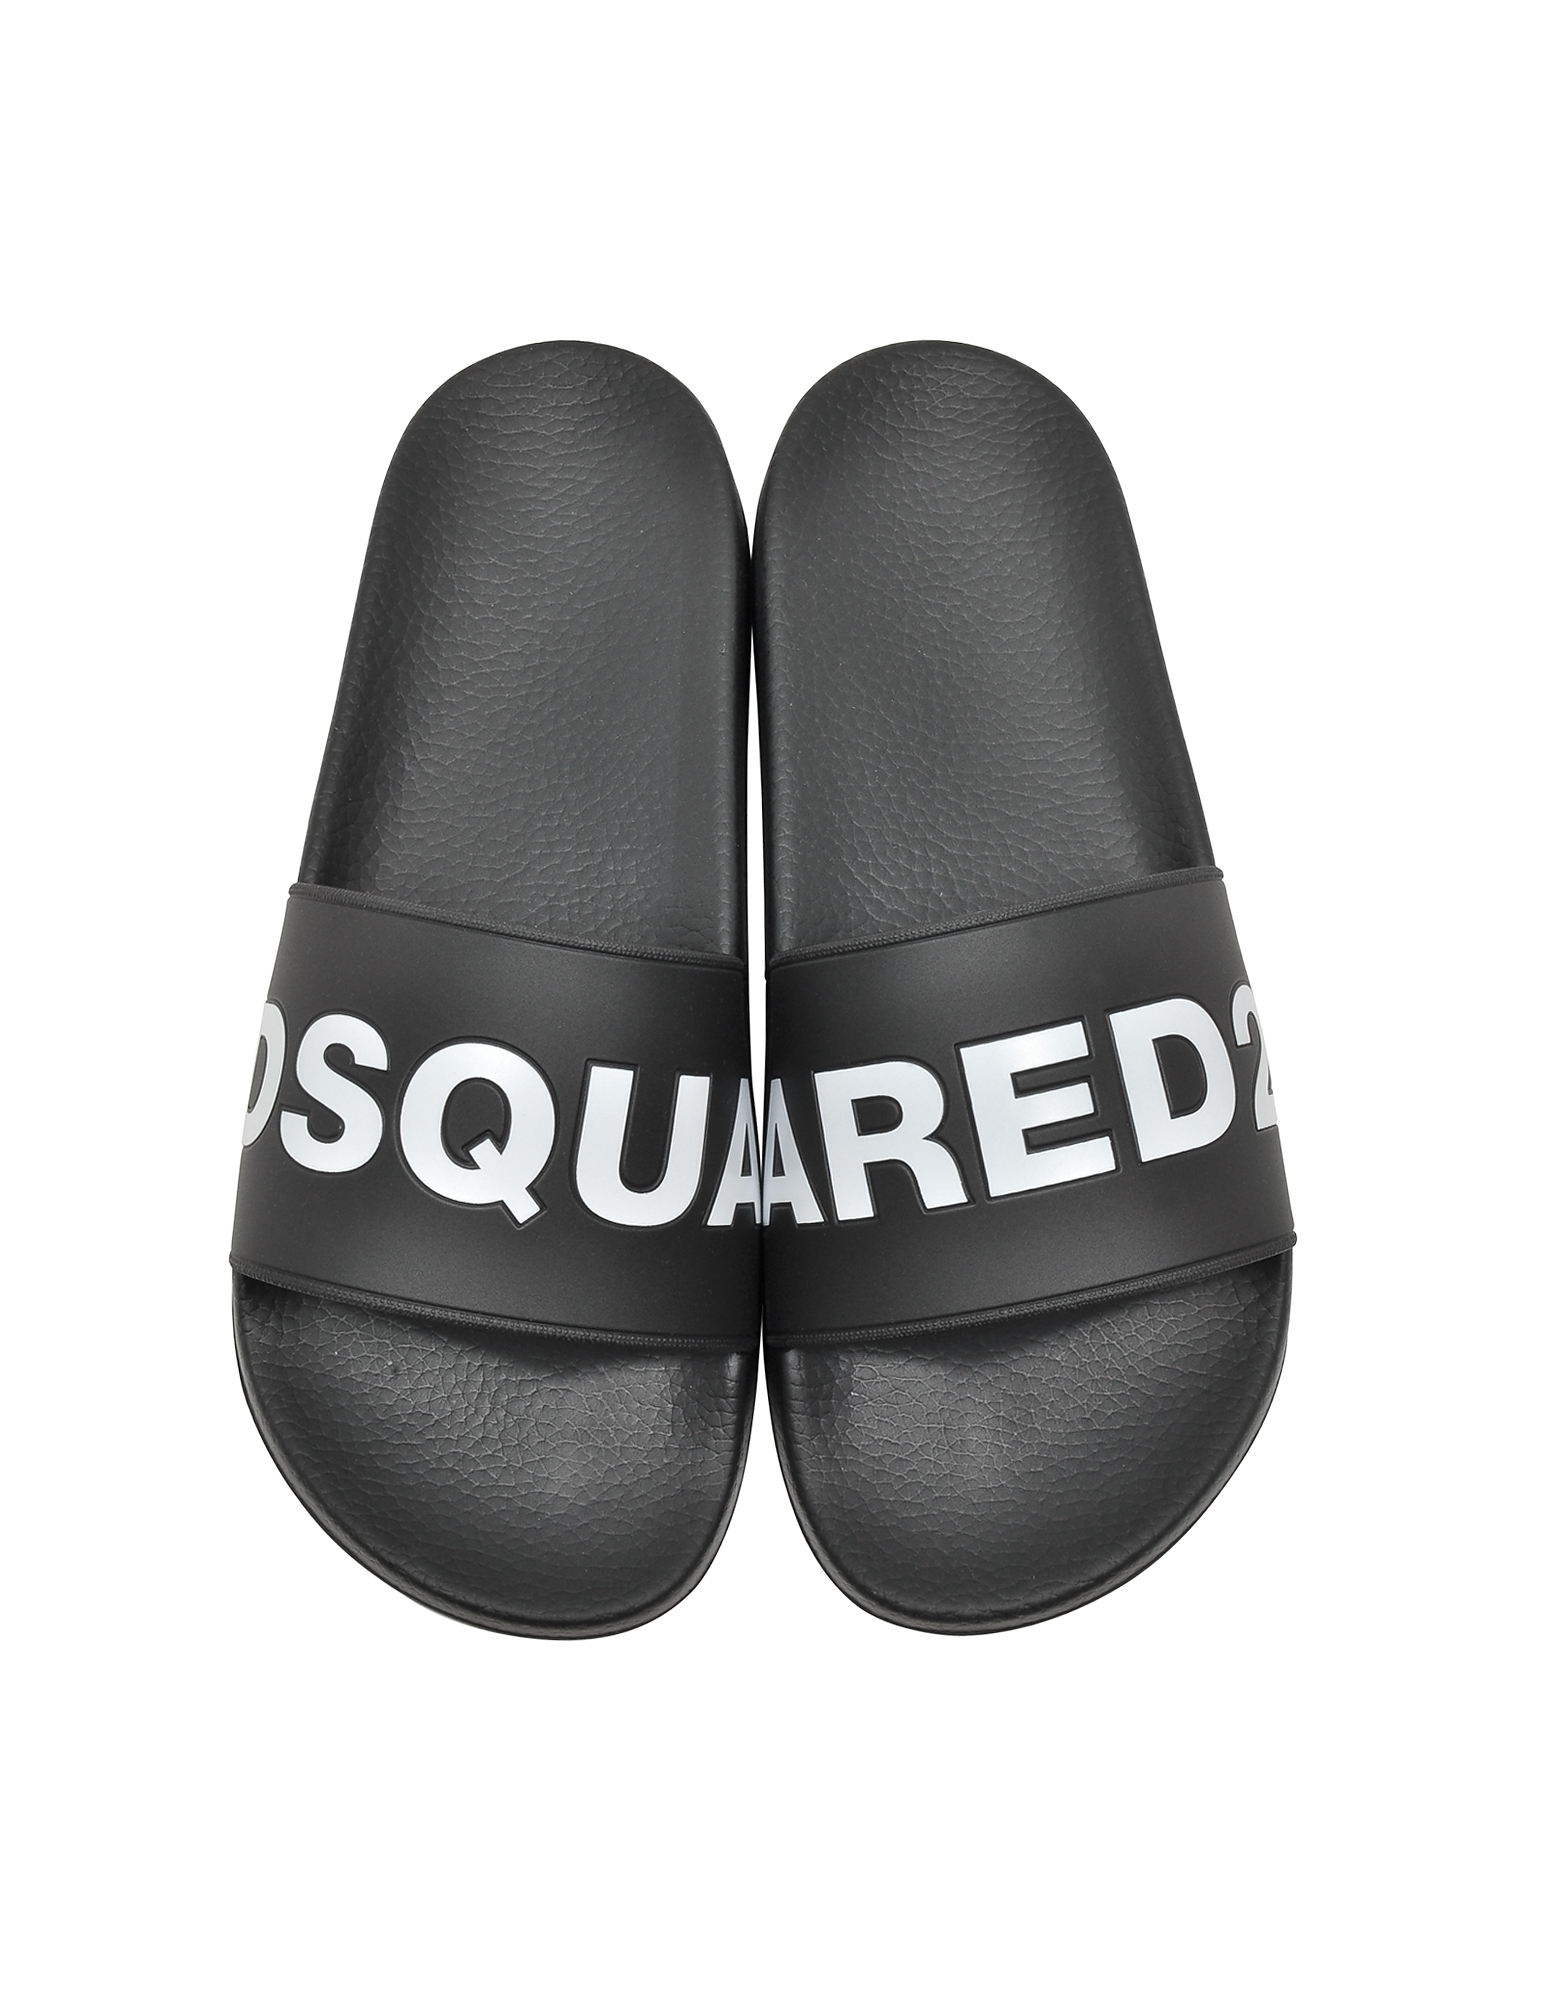 DSquared2 Shoes, Black Signture Men's Flip Flop Pool Sandals